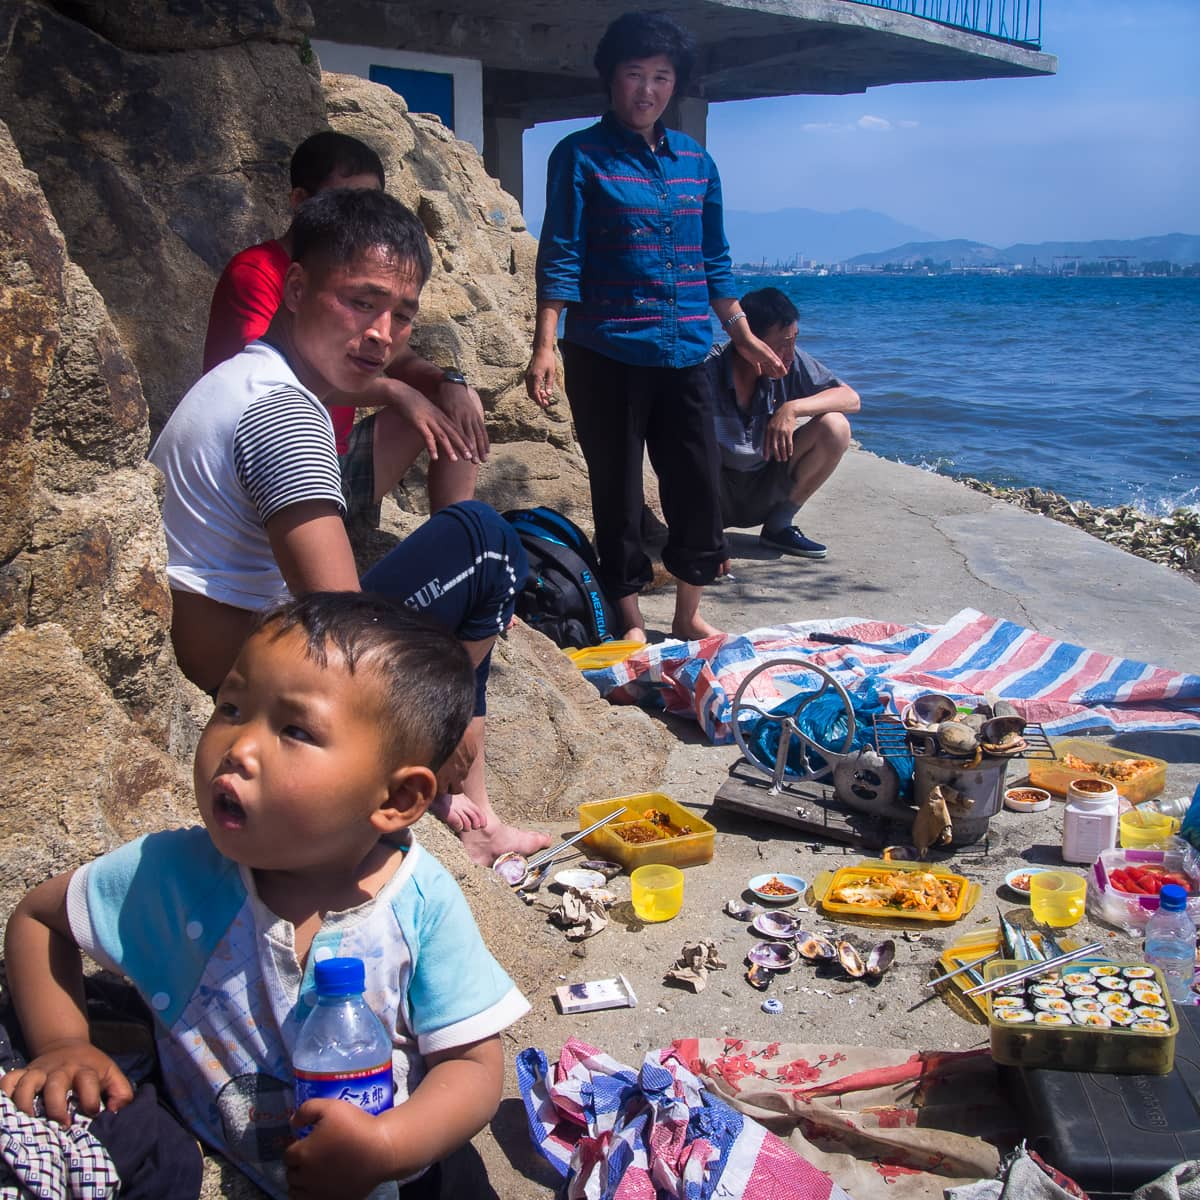 A North Korean family picnicking.